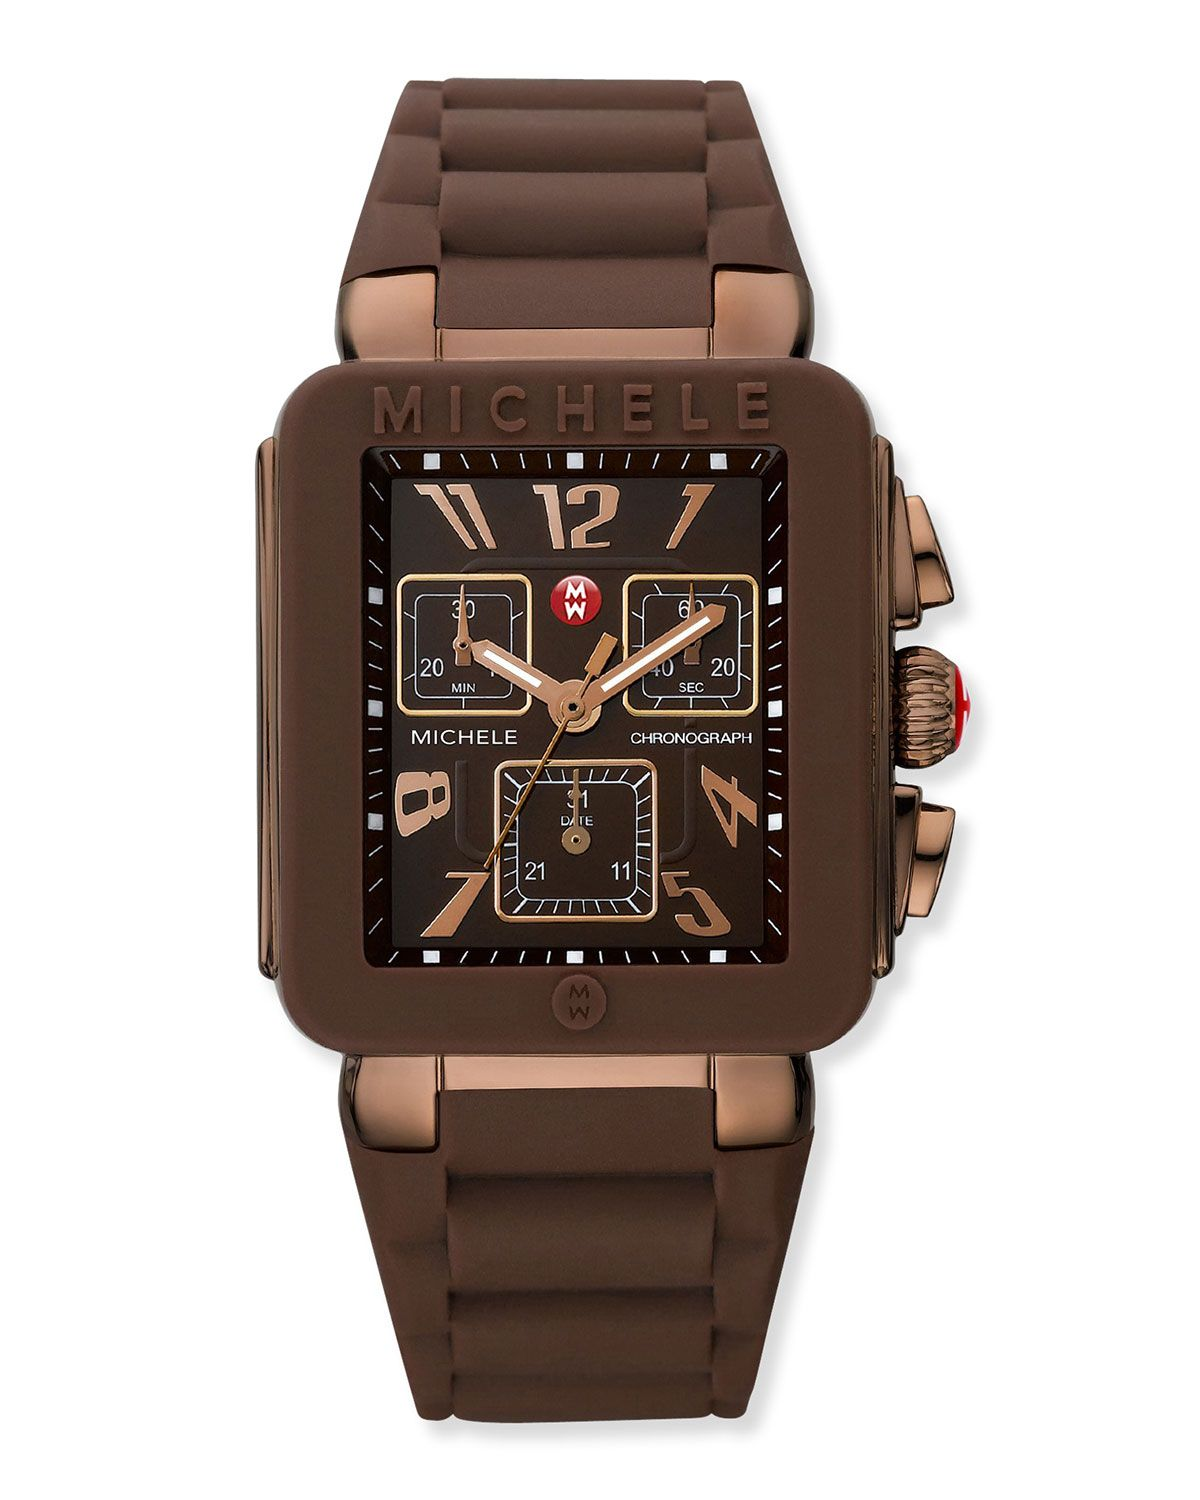 Michele Park Jelly Bean Watch With Brown Silicone Strap